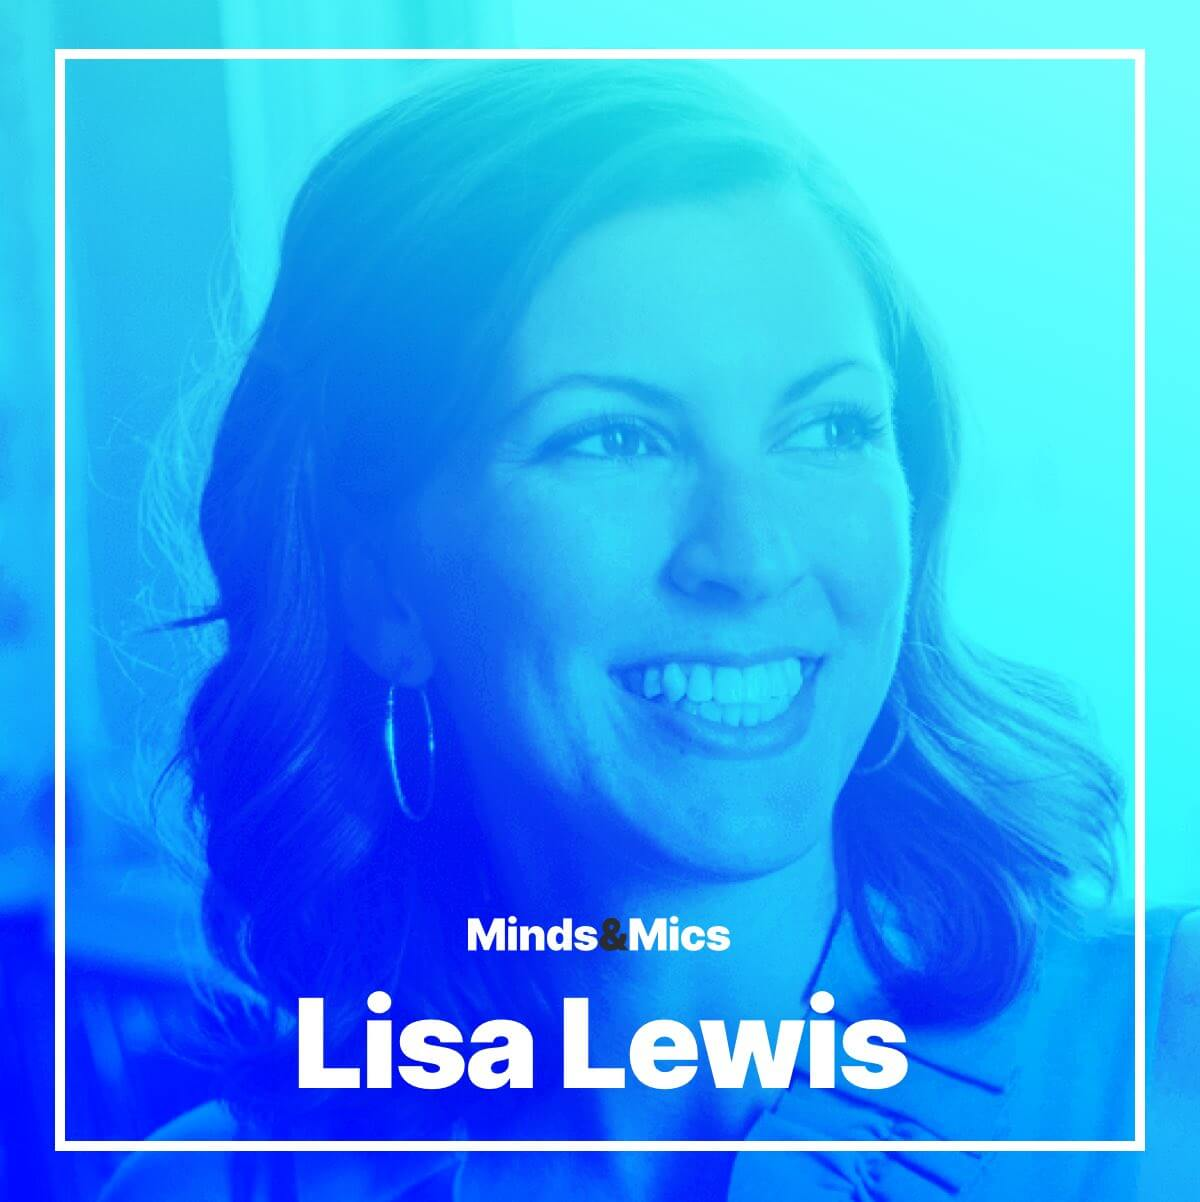 Career Transitions Lisa Lewis Minds and Mics Wignall